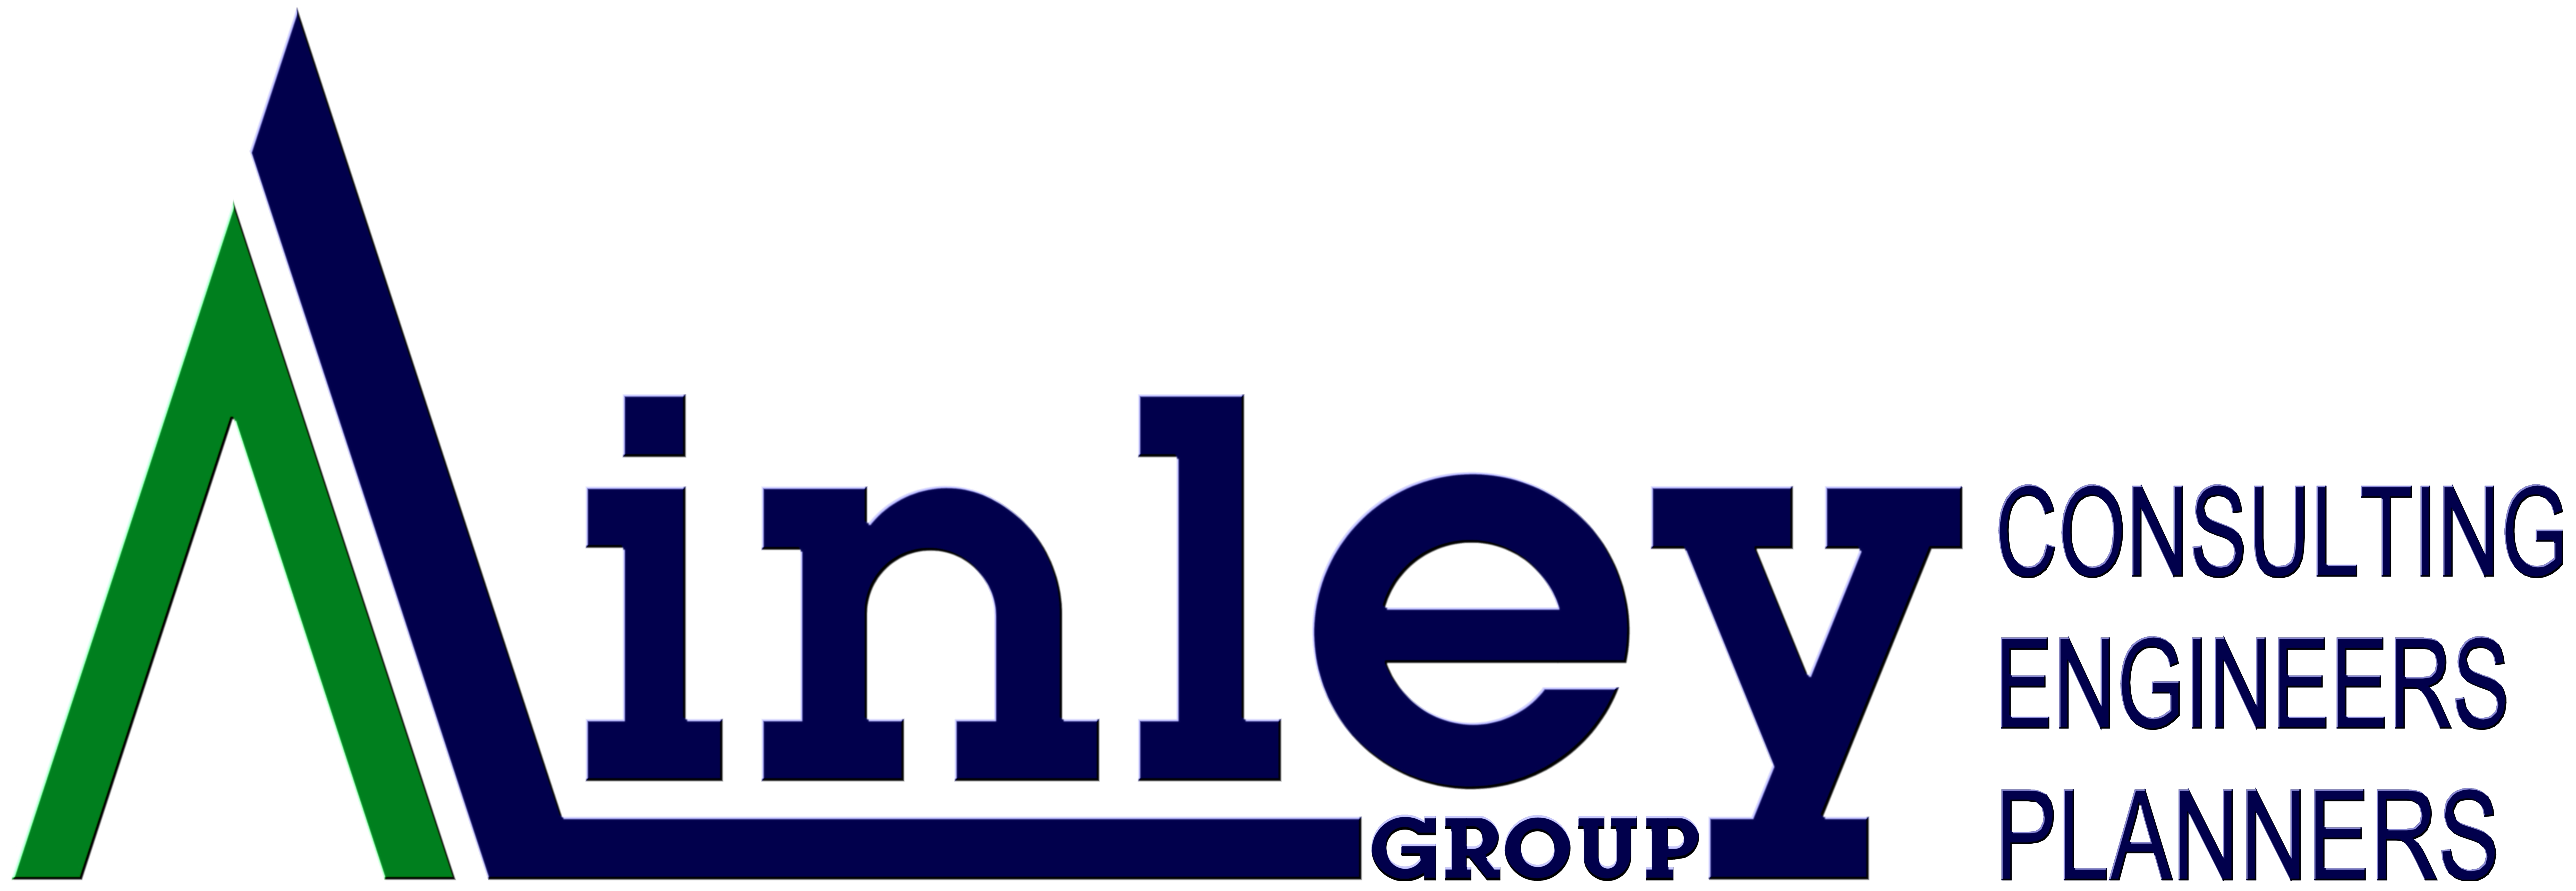 BASIC HOLE SPONSOR - Ainley Group Consulting Engineers - Logo